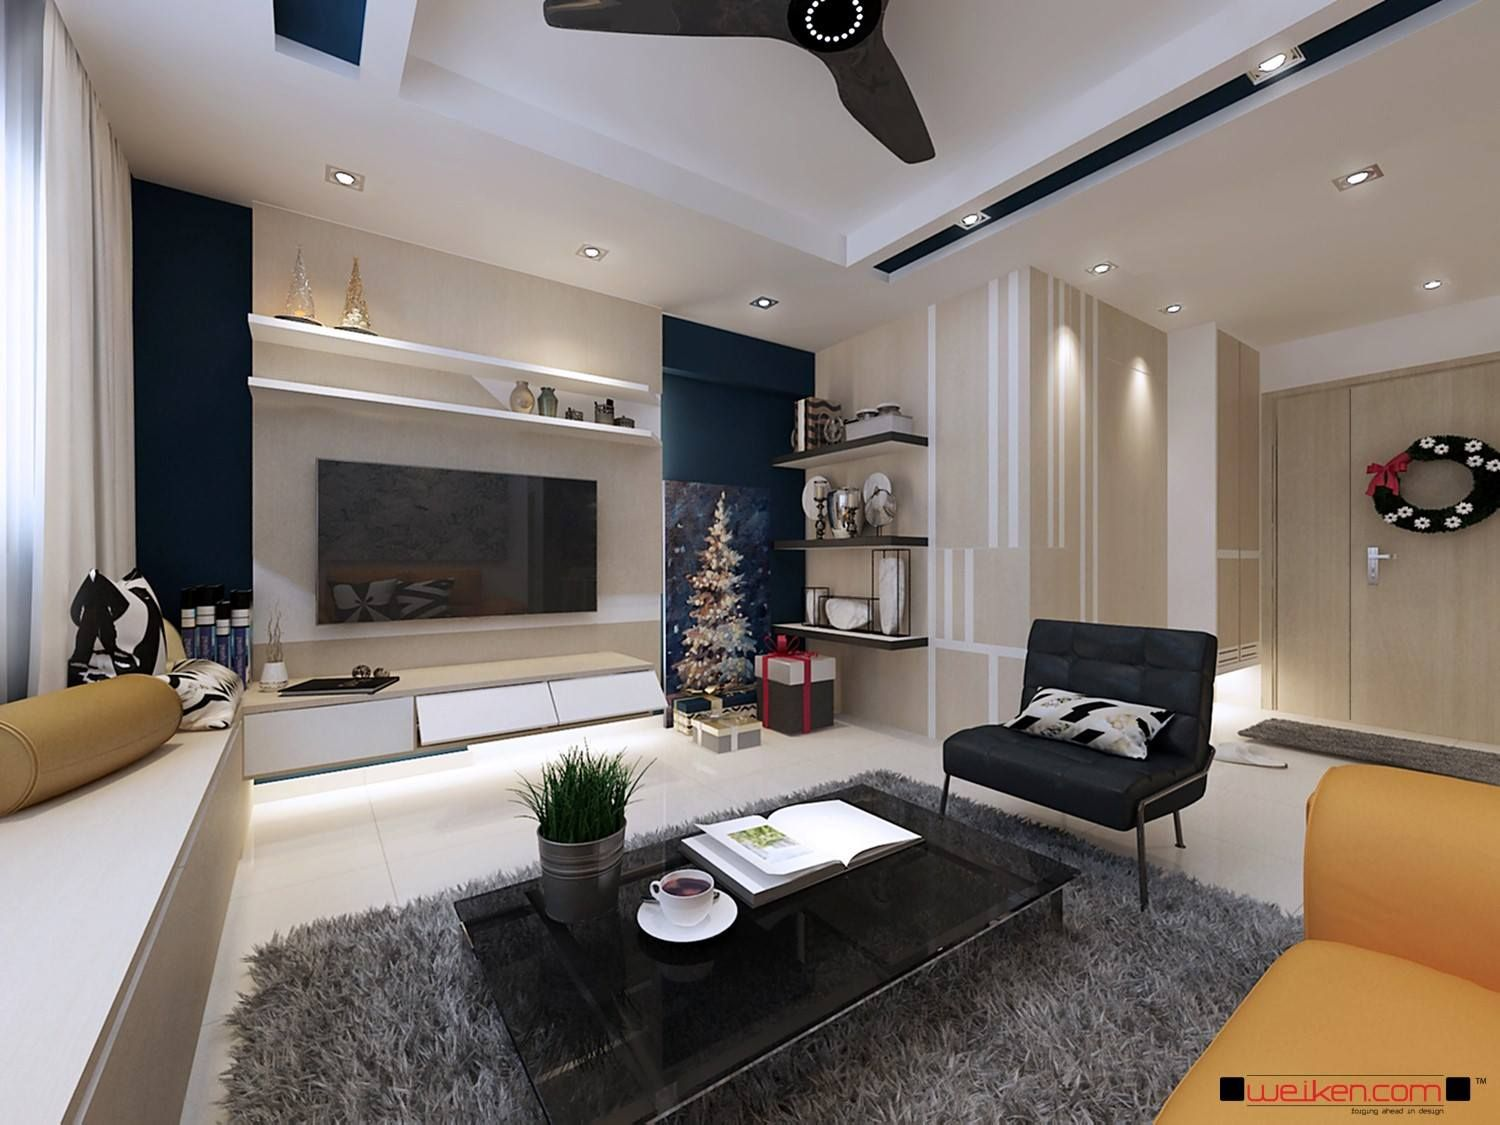 examples of modern interiors to inspire you | living room